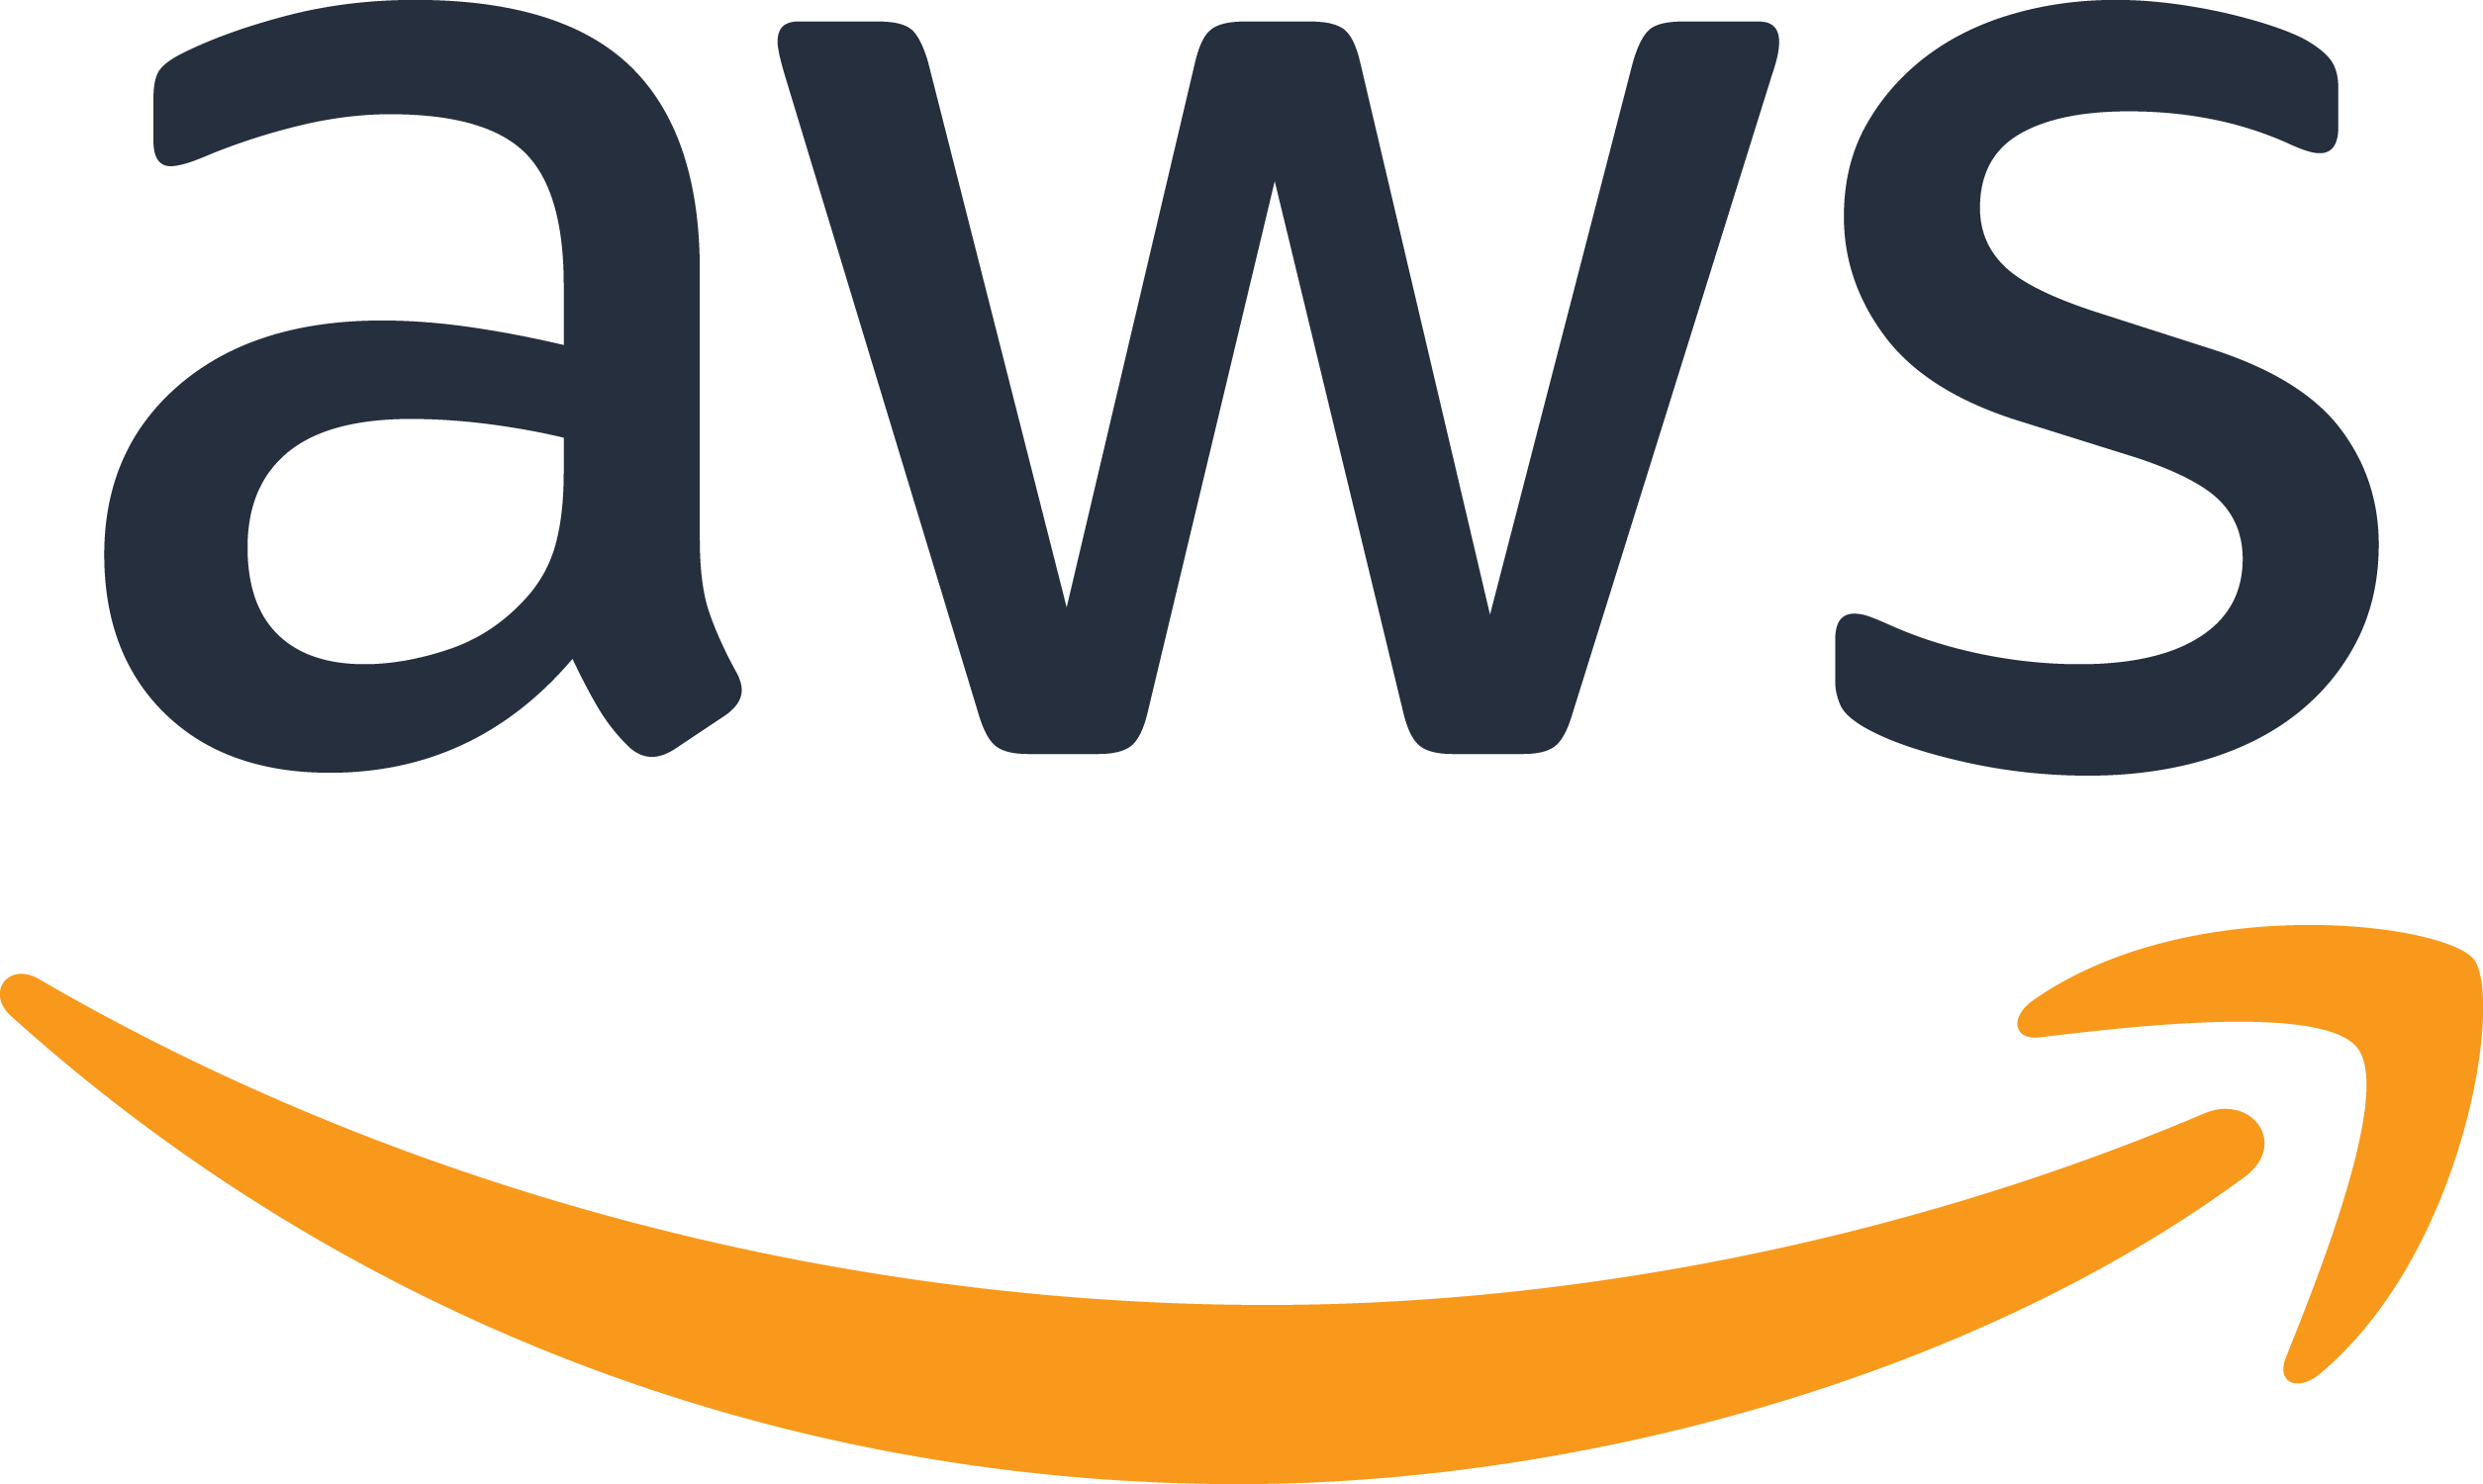 Amazon Web Services to Open Data Centers in the Middle East by Early 2019